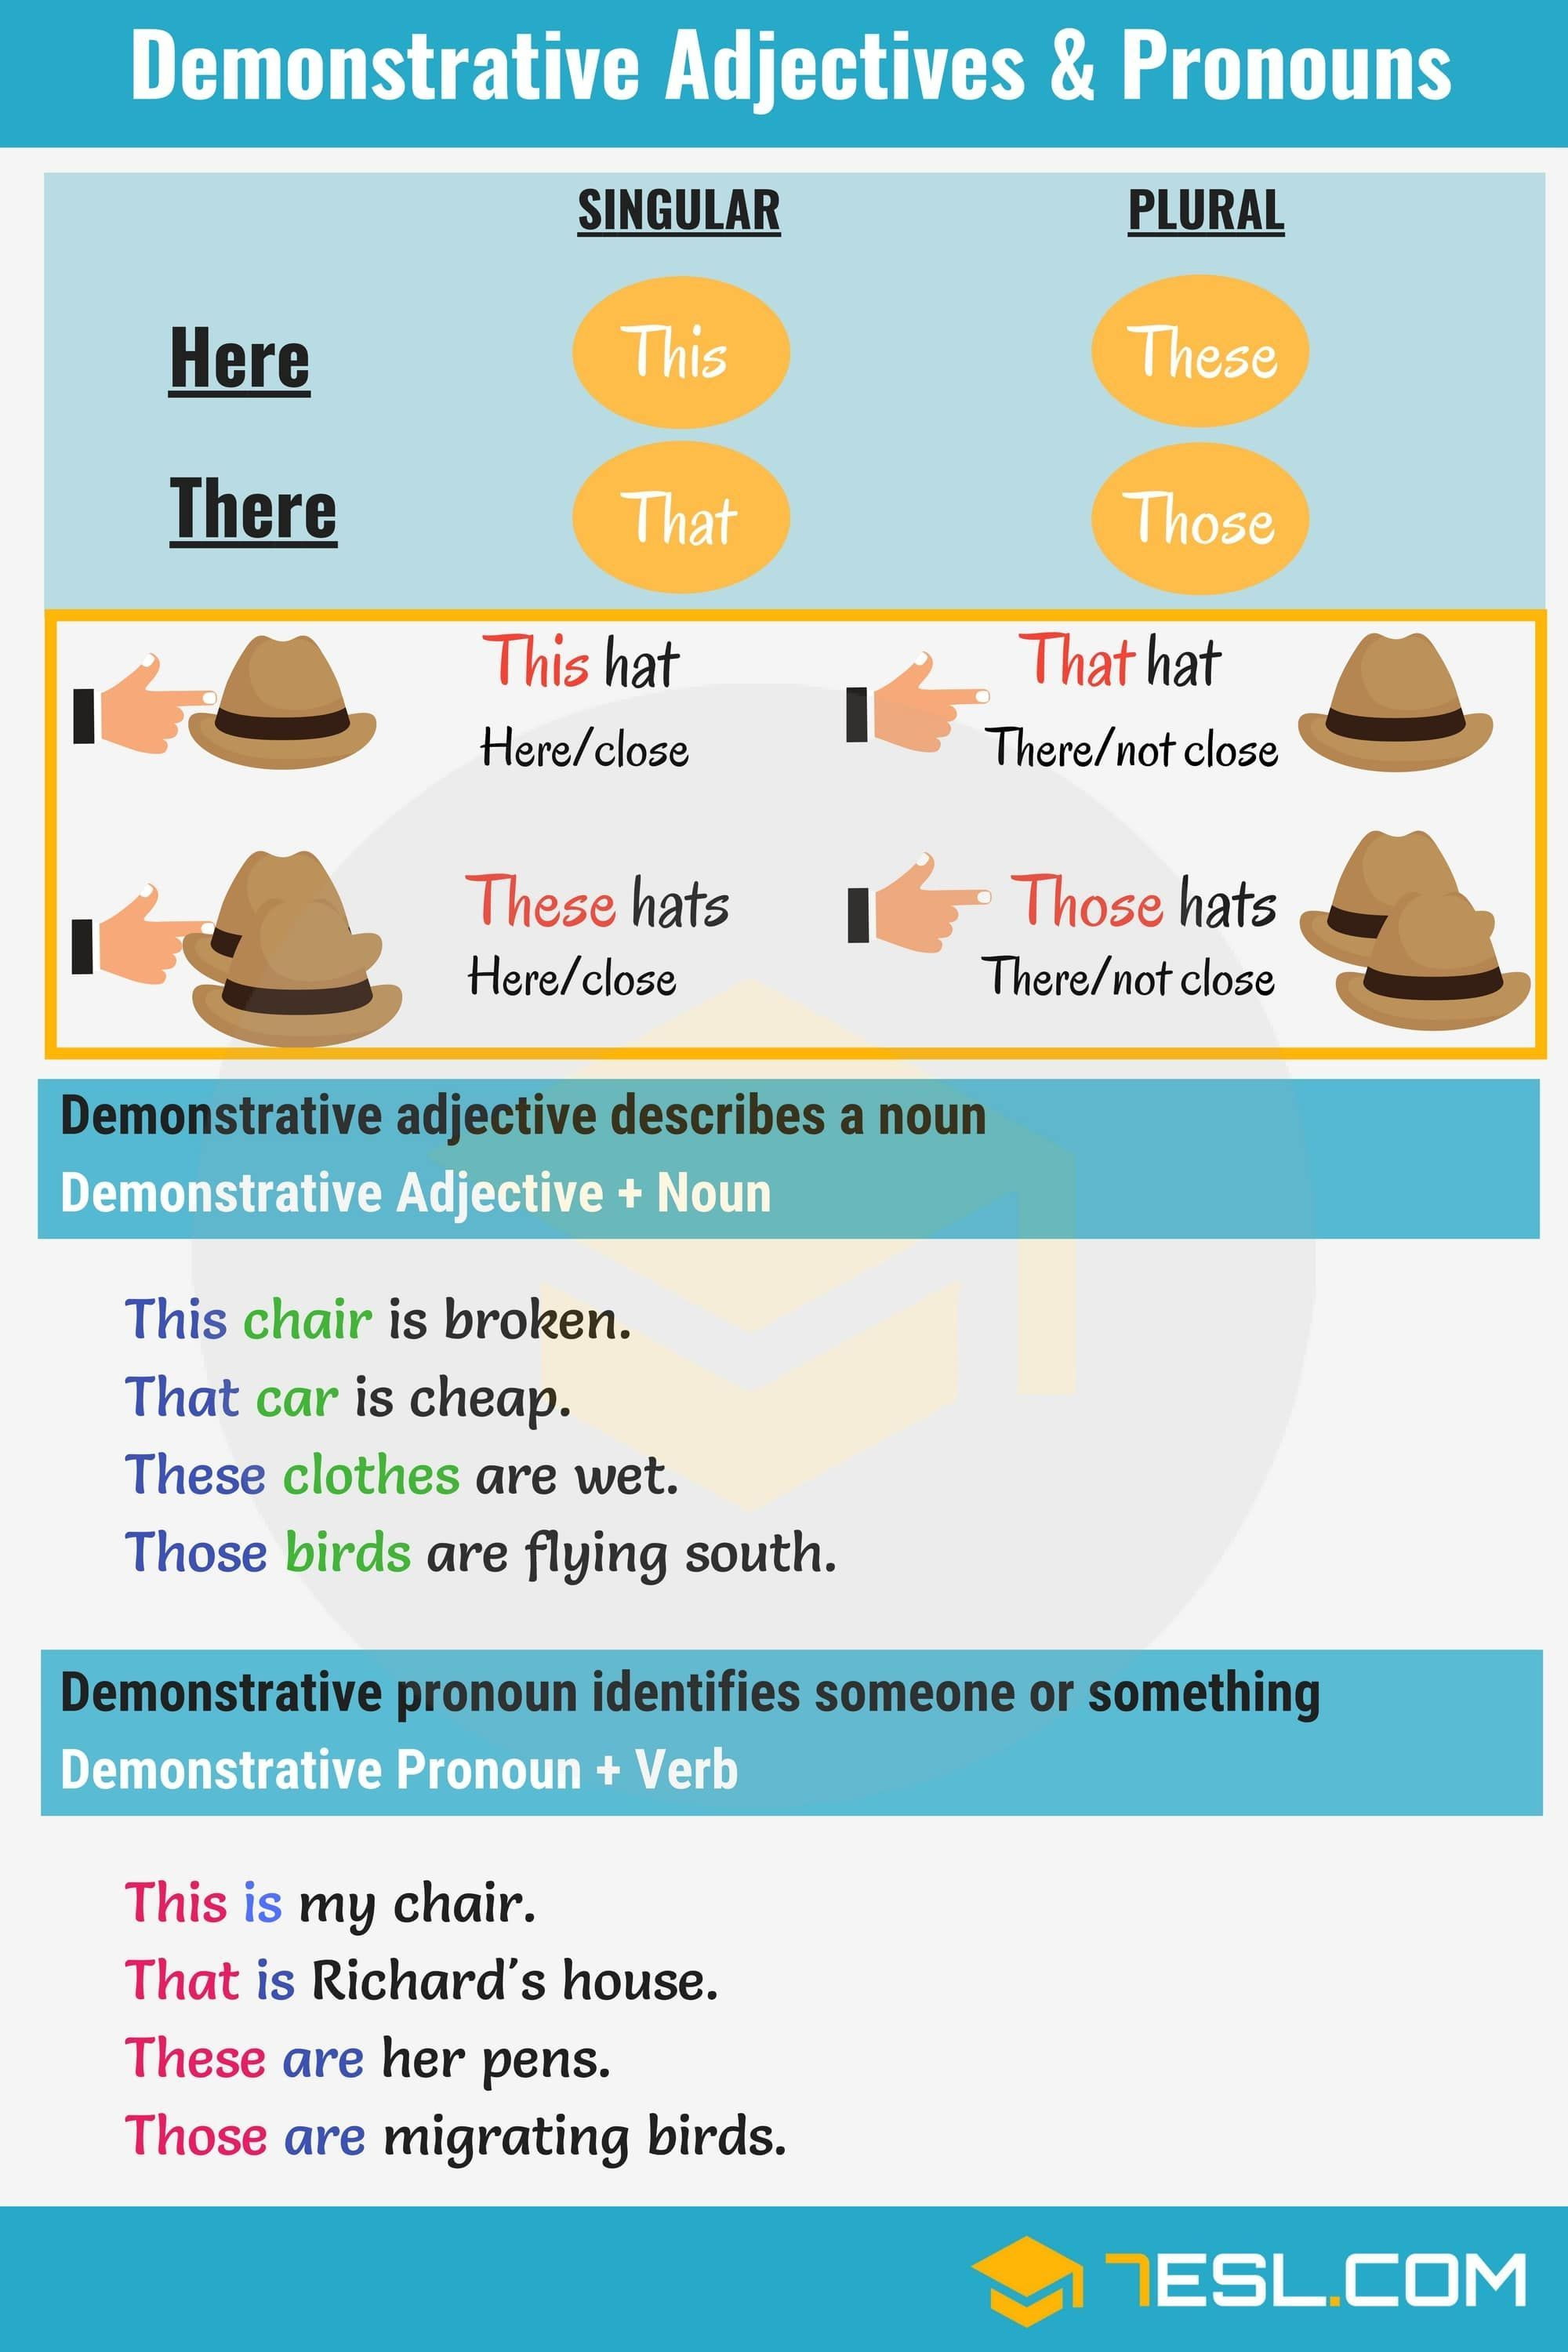 worksheet Demonstrative Adjectives Spanish Worksheet 0shares learn how to use demonstrative adjectives and pronouns in english when a noun or